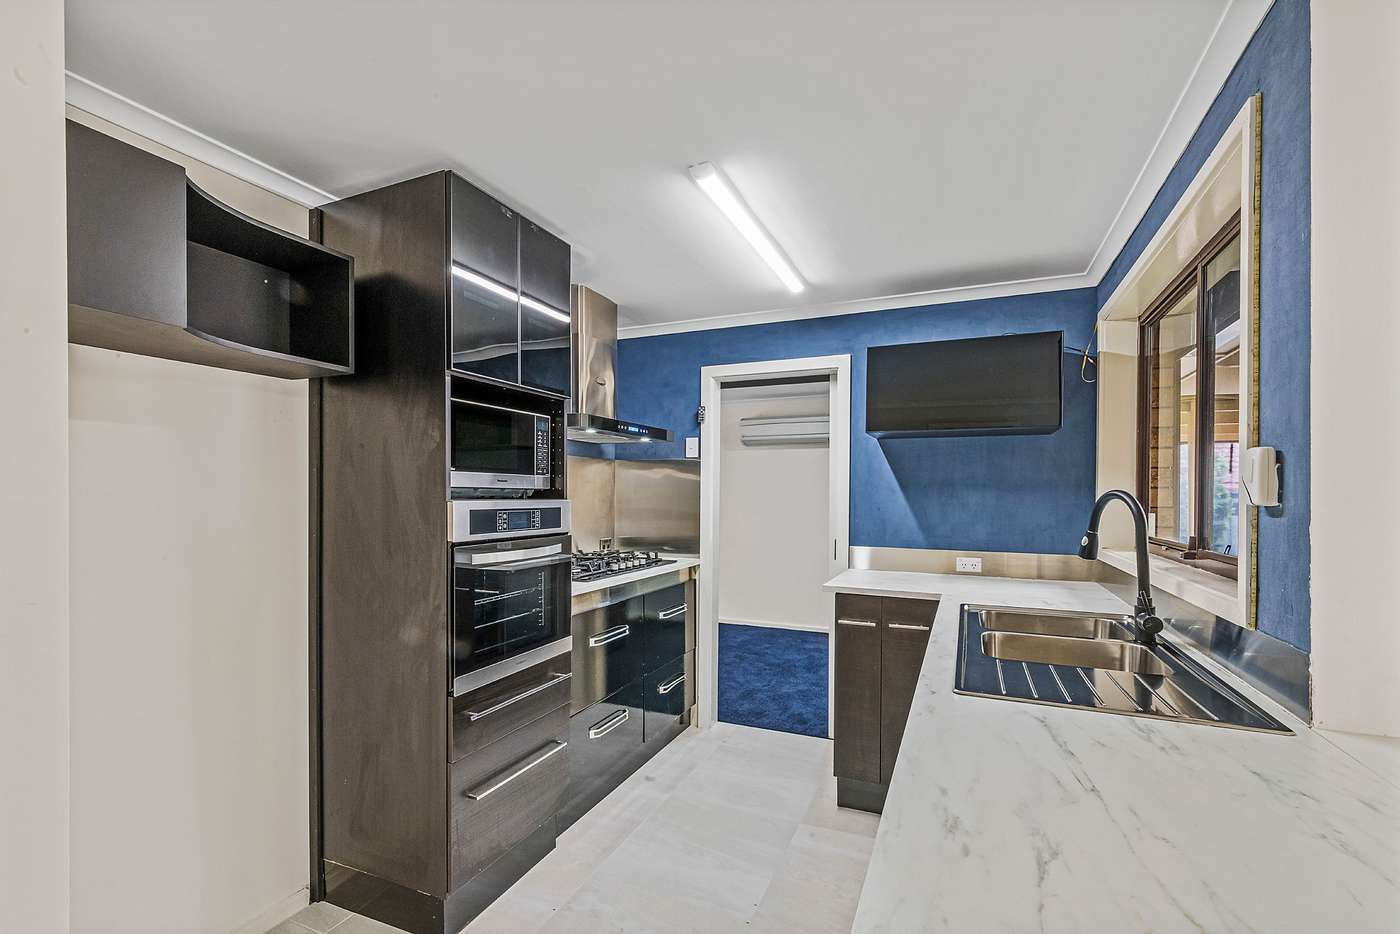 Sixth view of Homely house listing, 6 Timothy Road, Morphett Vale SA 5162